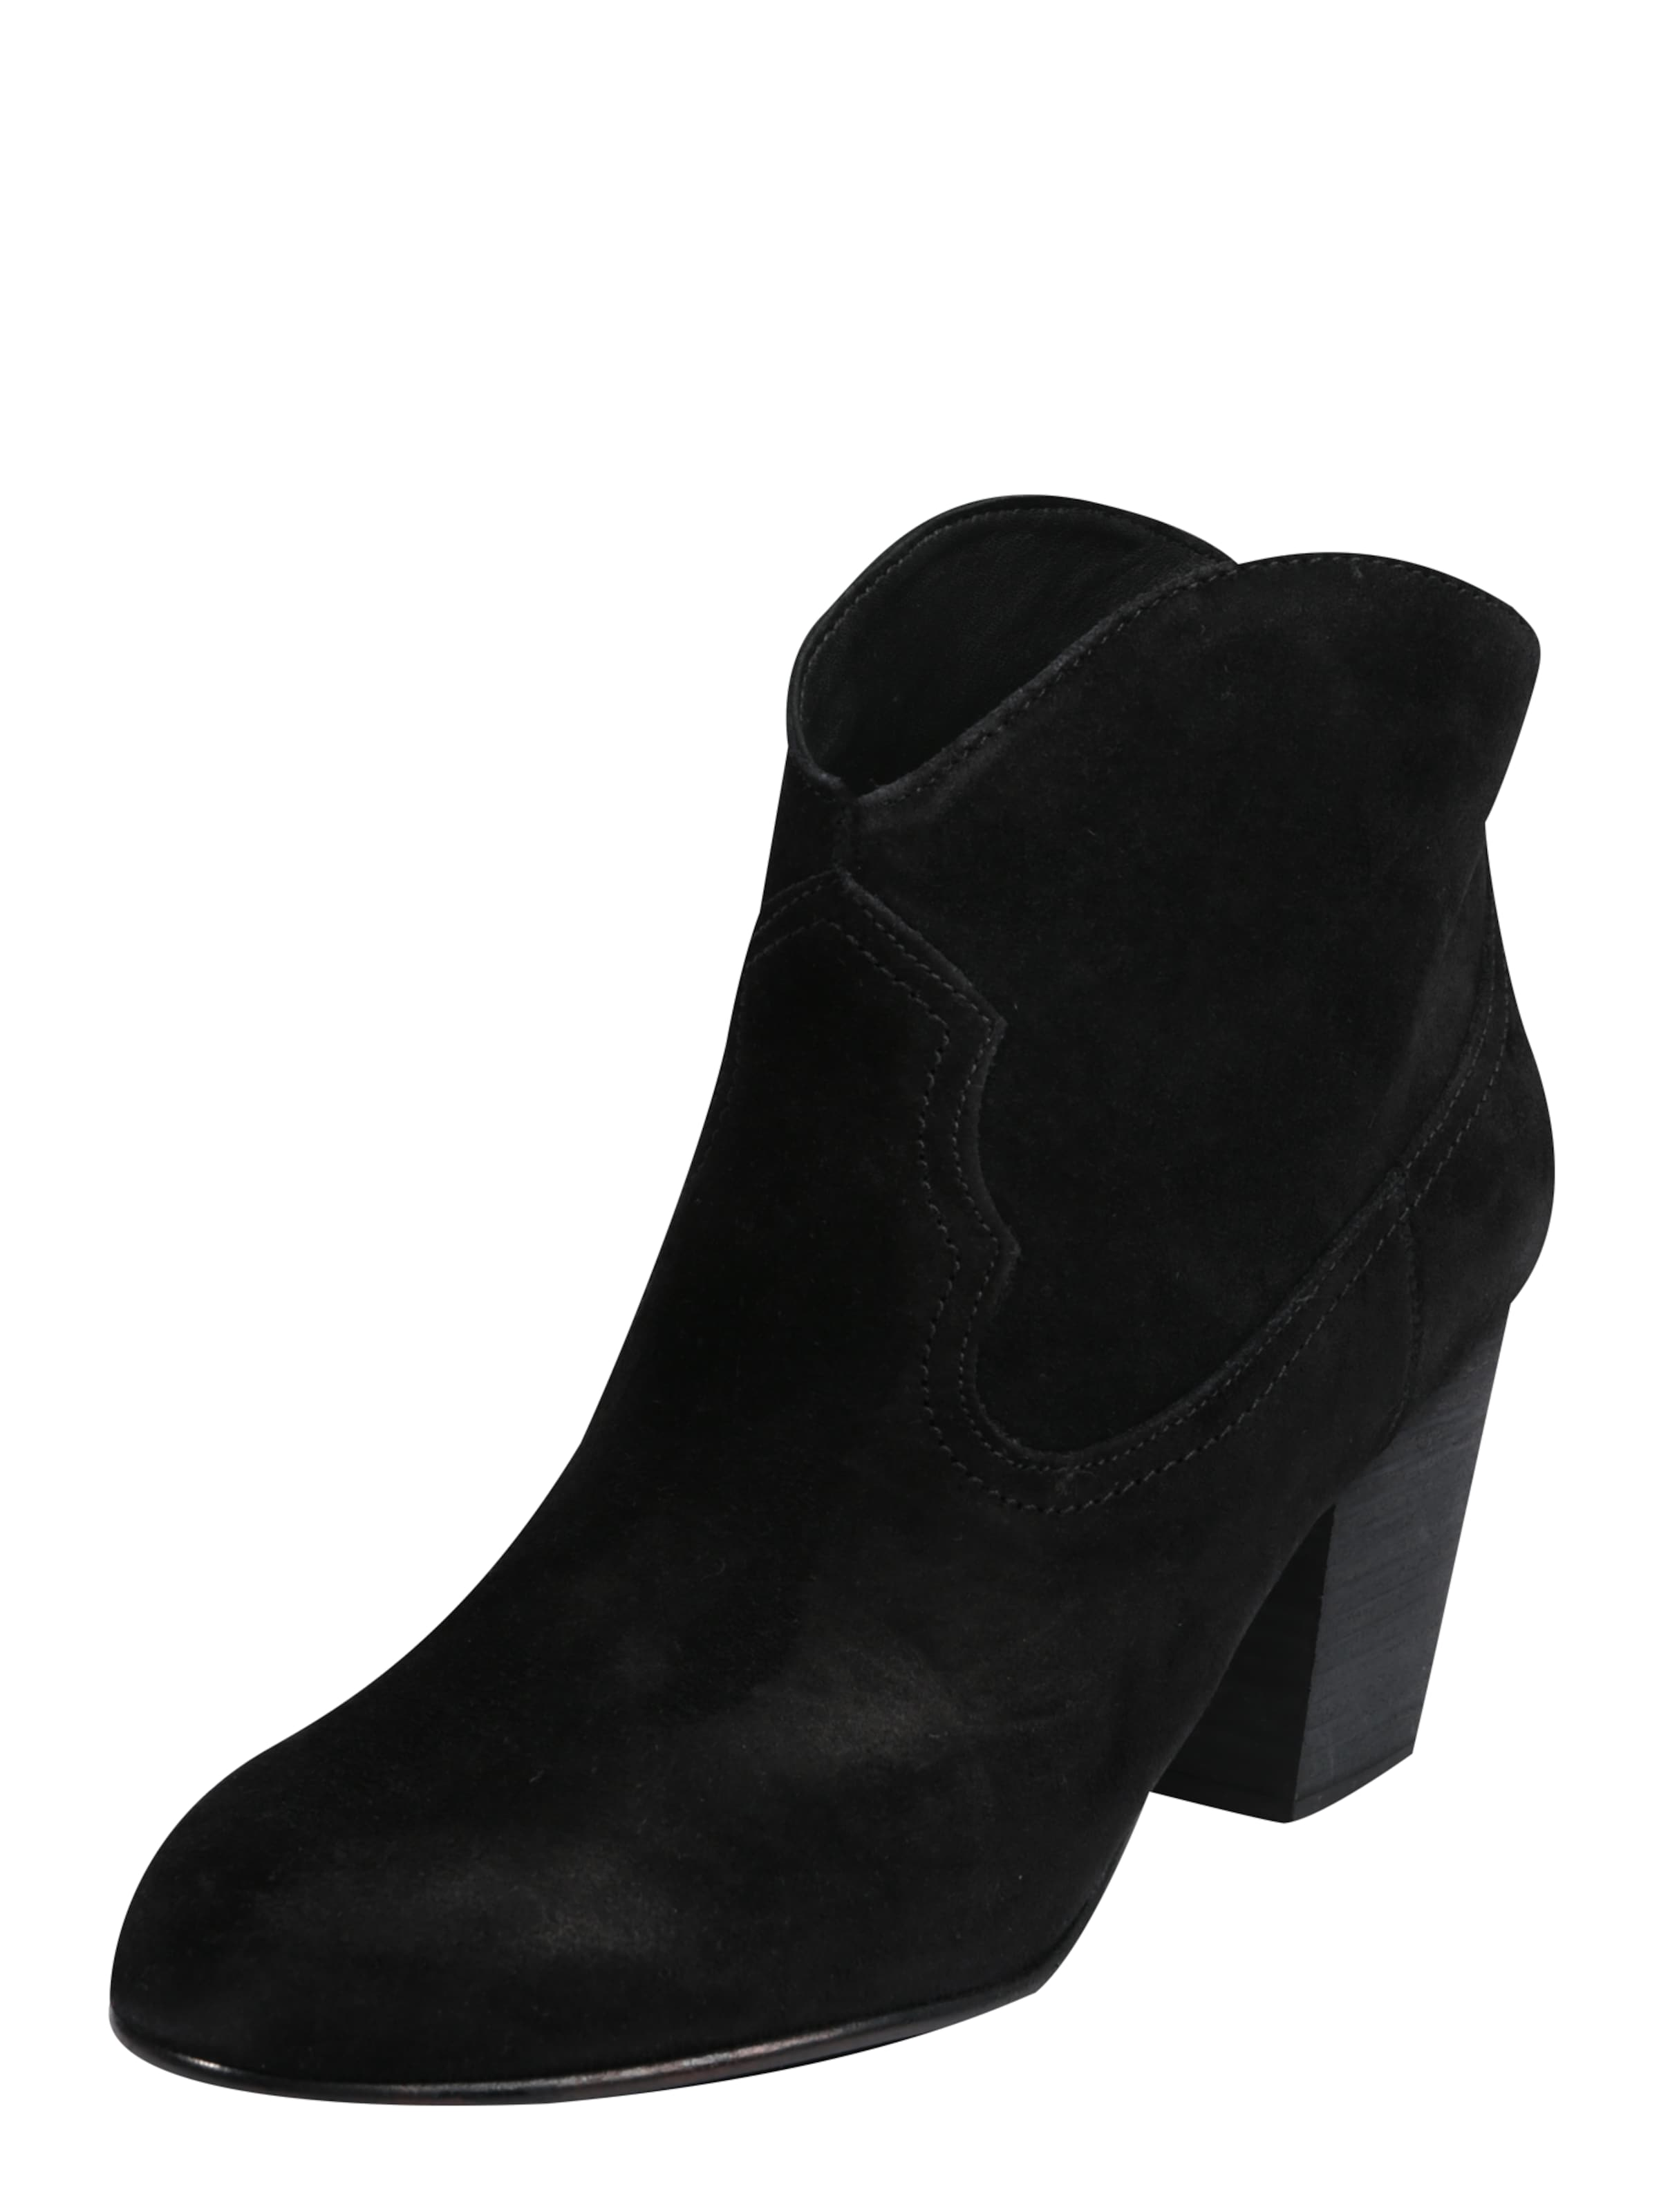 POLO RALPH LAUREN | Ankle Boots  MAZIE